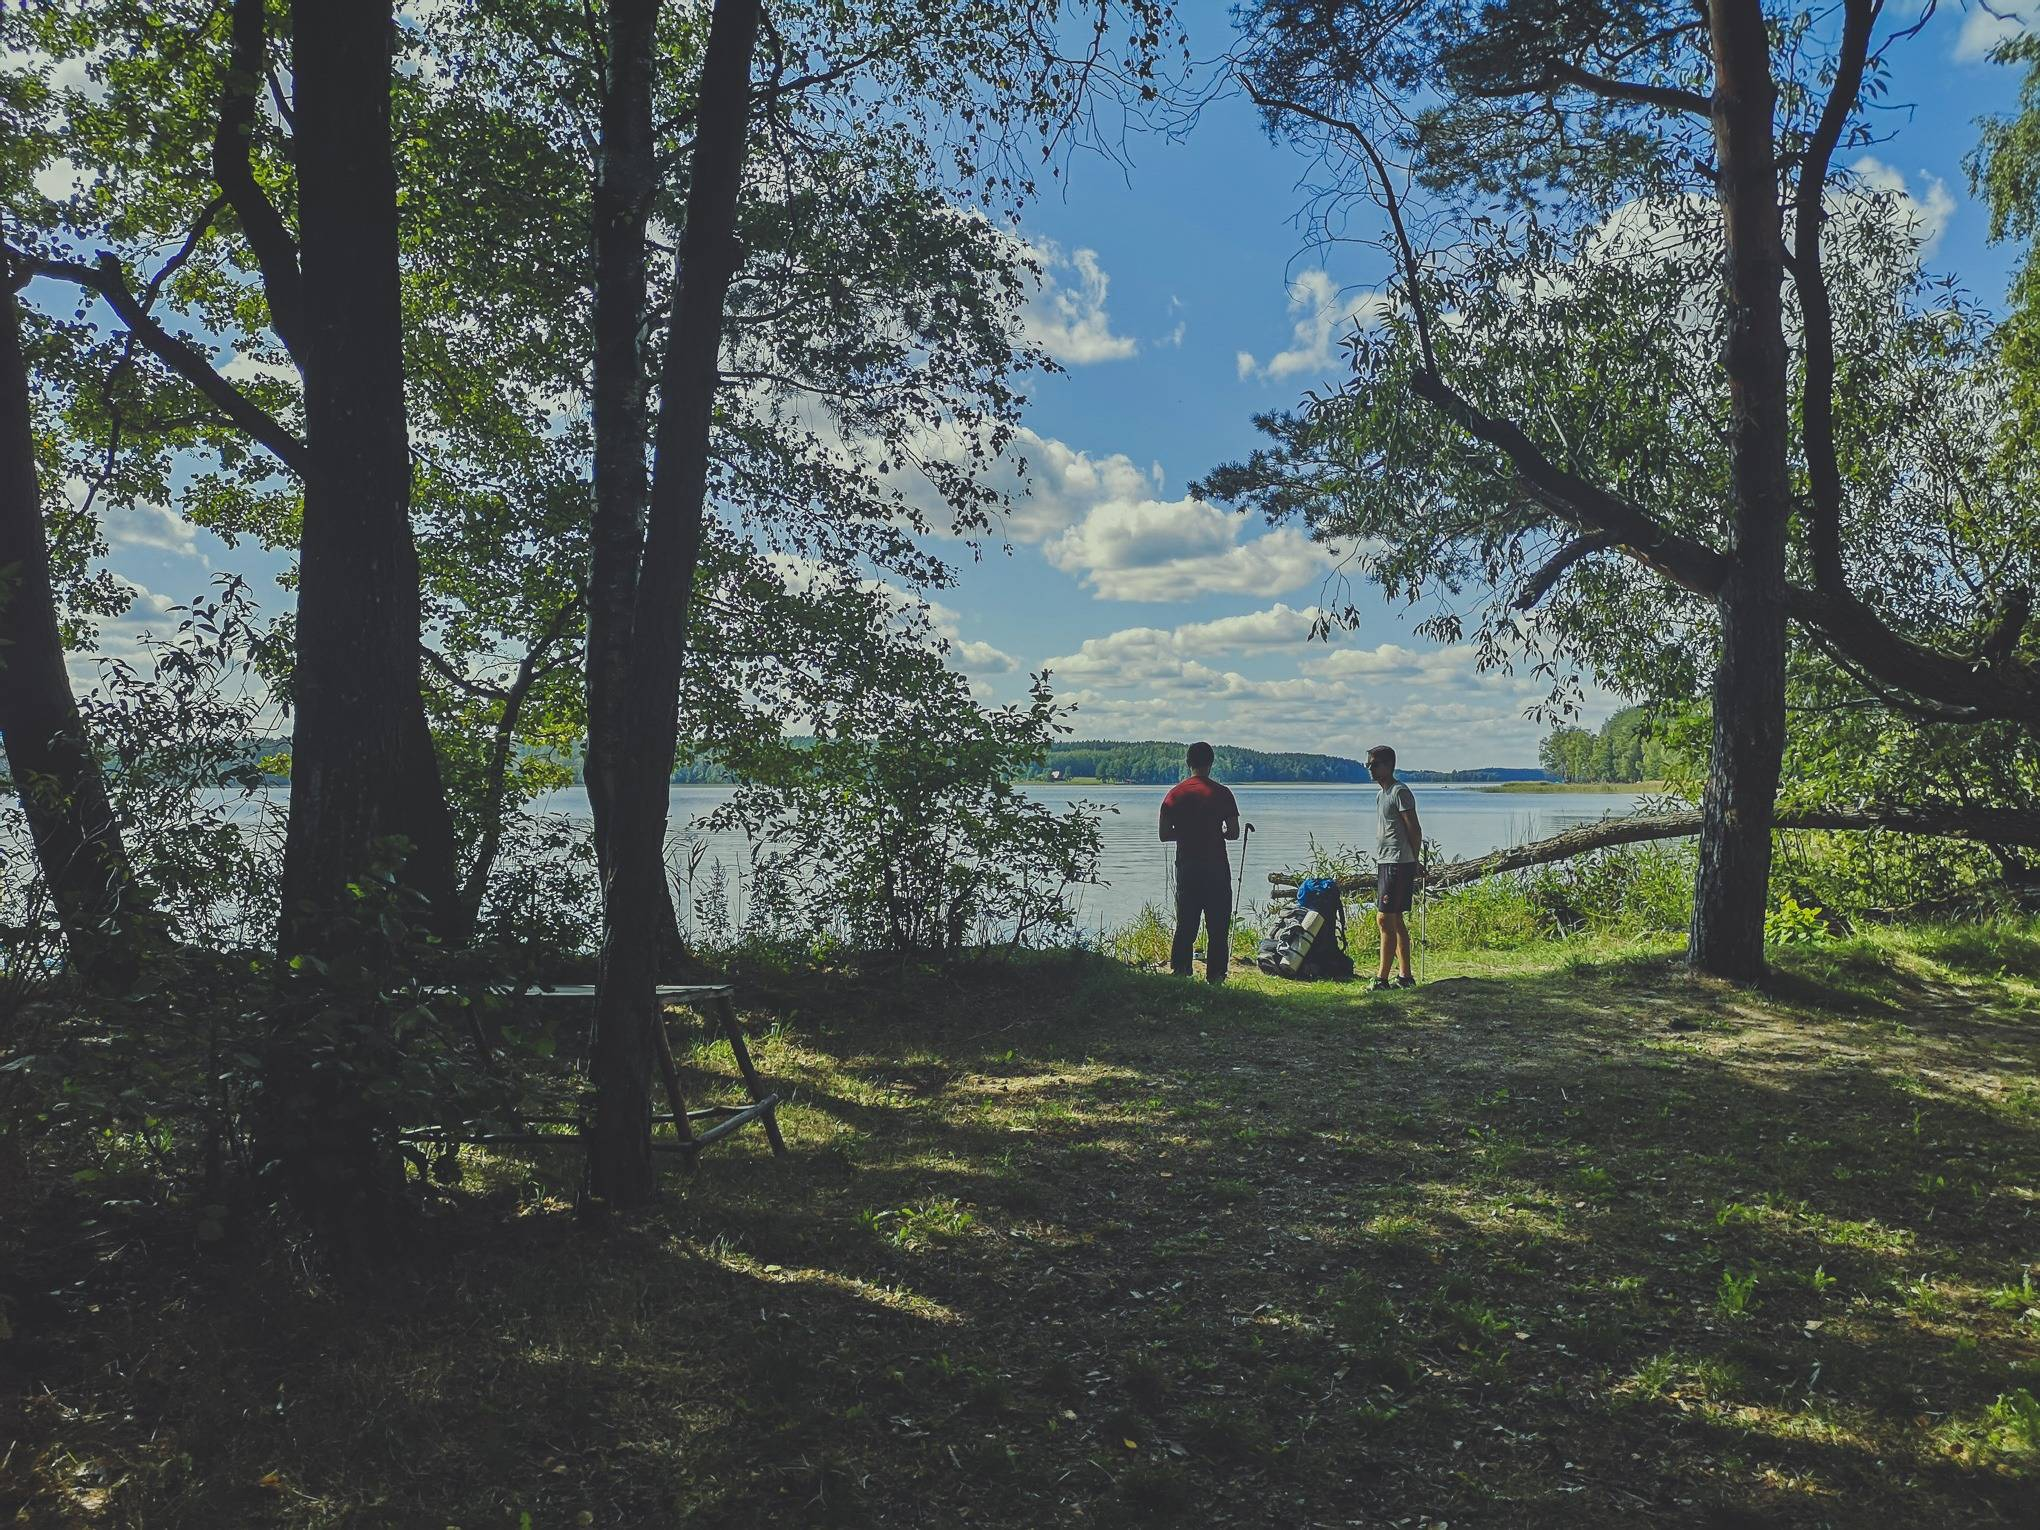 Taking on a trail near White Lakajai lake in Labanoras regional park, Lithuania. Photo Alis Monte [CC BY-SA 4.0], via Connecting the Dots